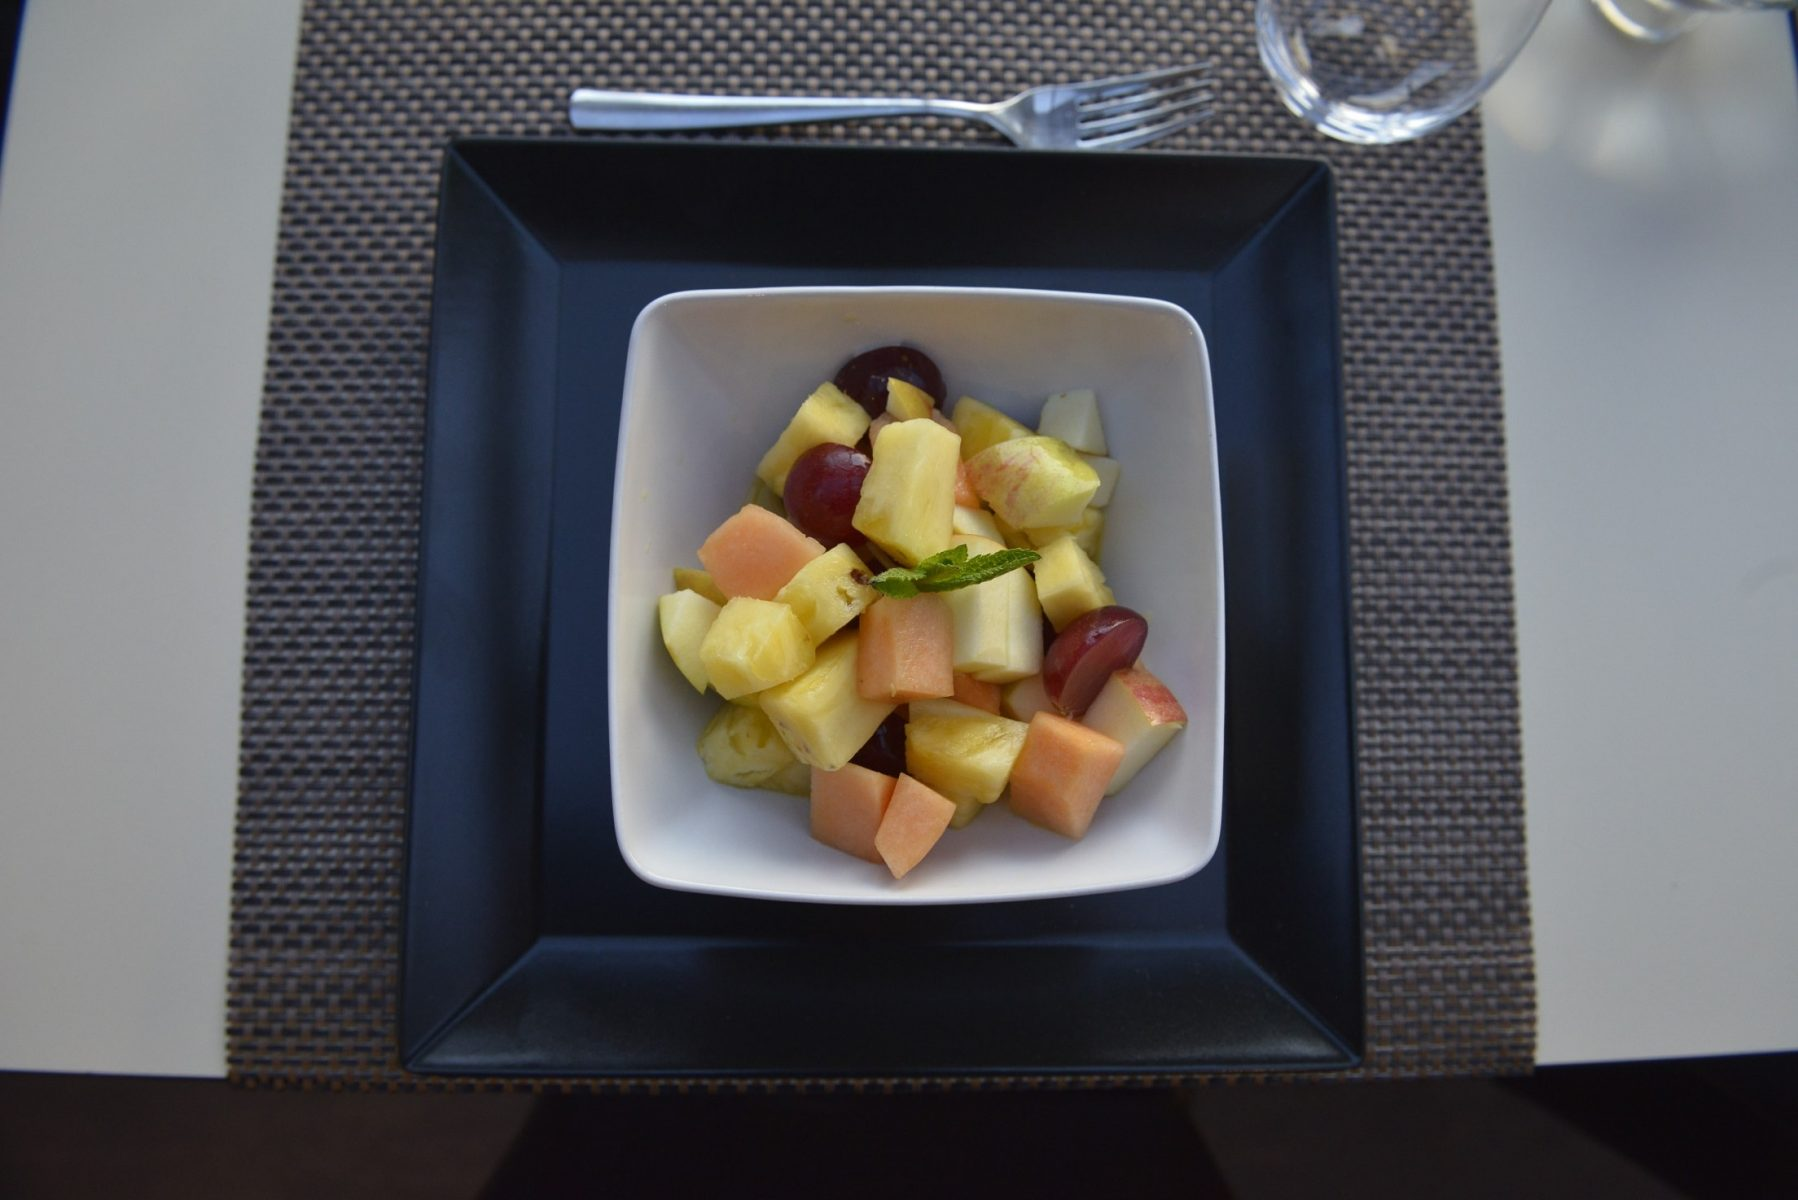 Sesonal fruit salad